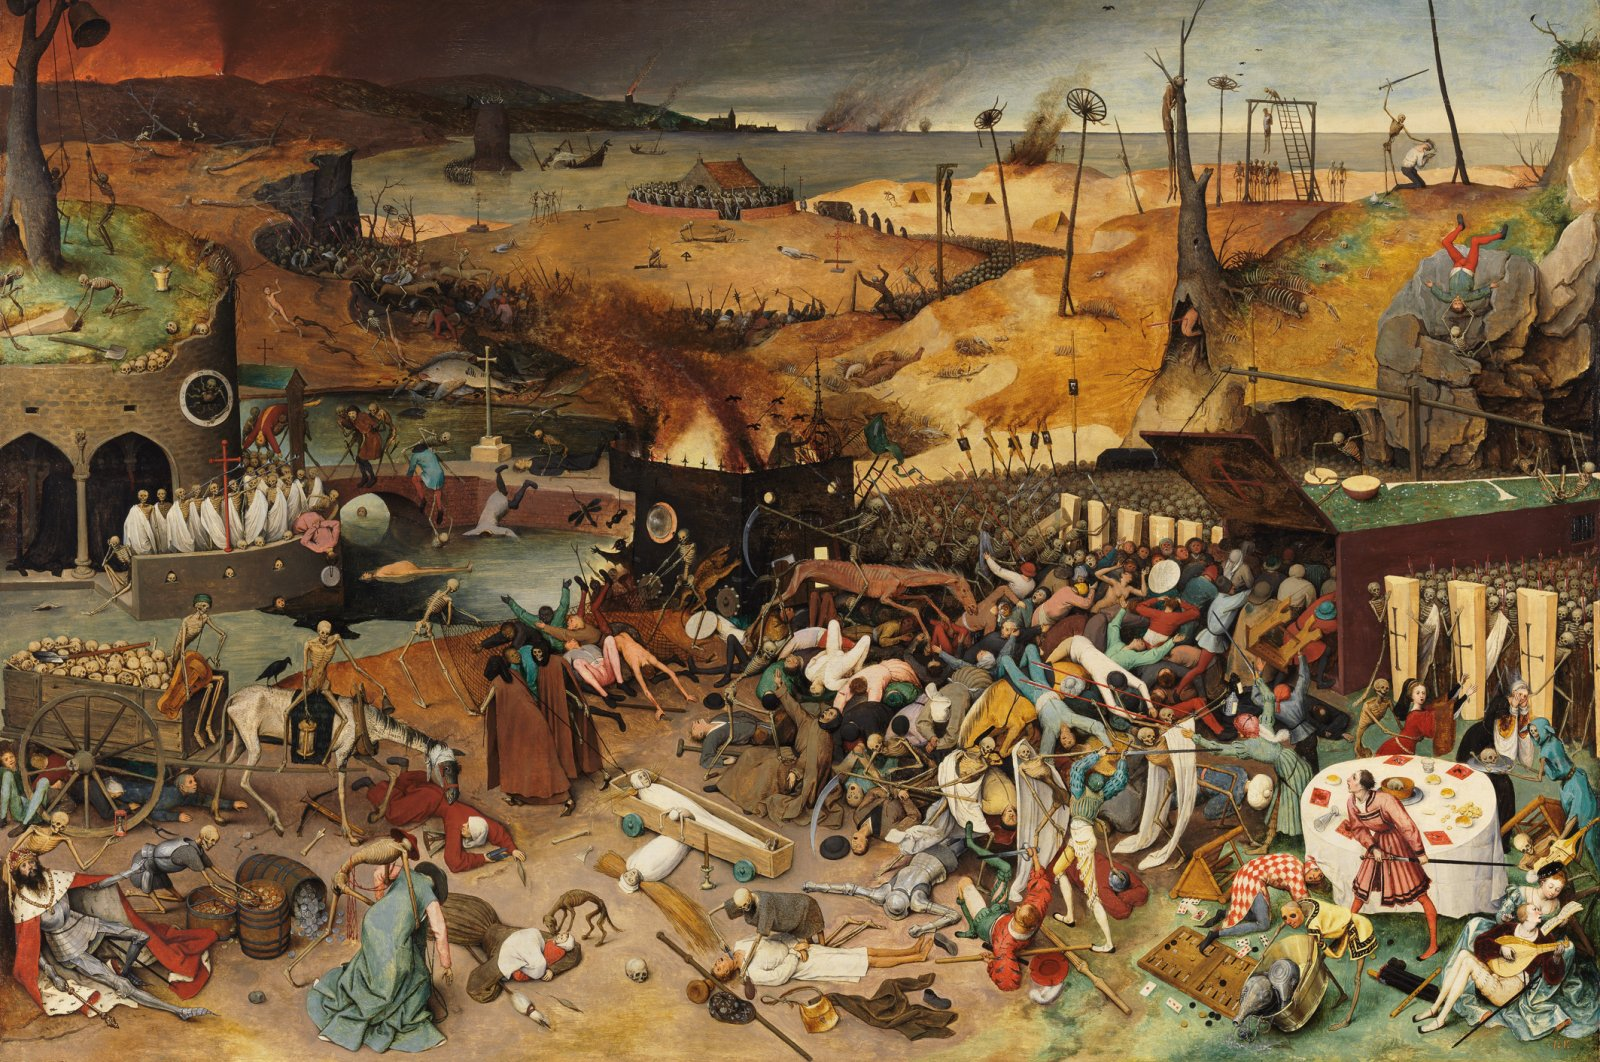 The Triumph of Death by Pieter Bruegel the Elder, circa 1562, oil on panel. Museo del Prado. (via WIKIMEDIA COMMONS)